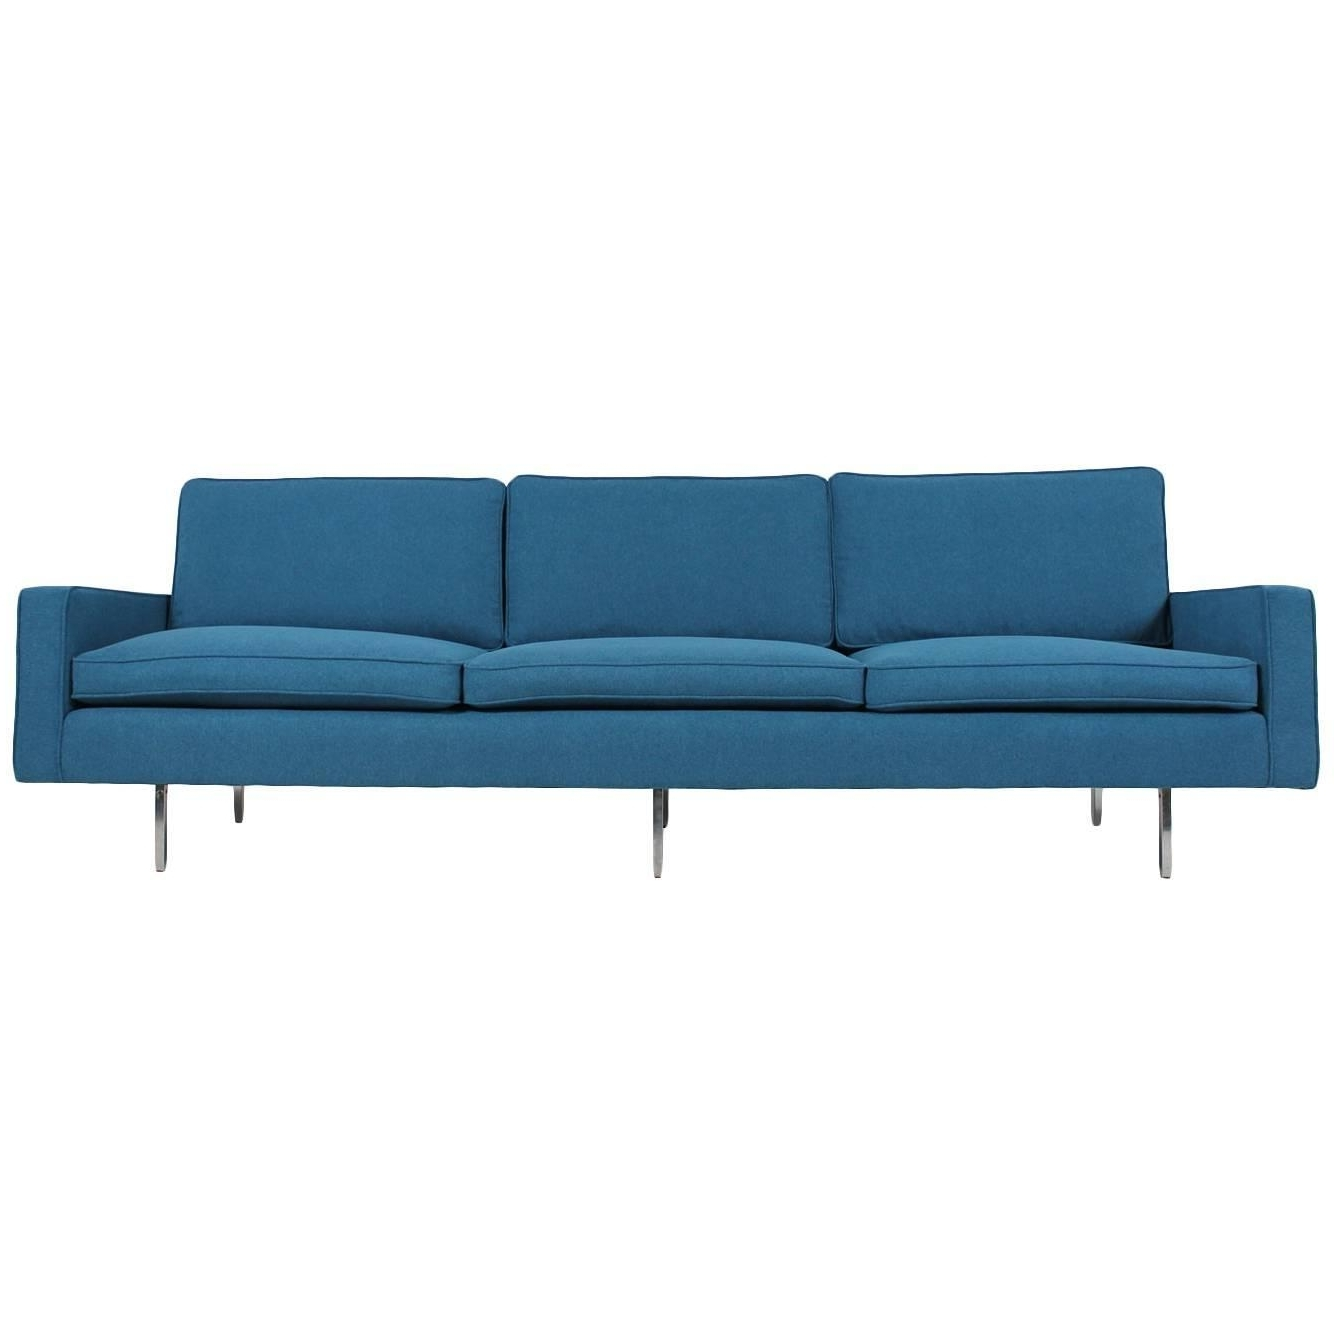 Widely Used Florence Knoll Sofas – 61 For Sale At 1Stdibs Inside Florence Knoll Wood Legs Sofas (View 20 of 20)